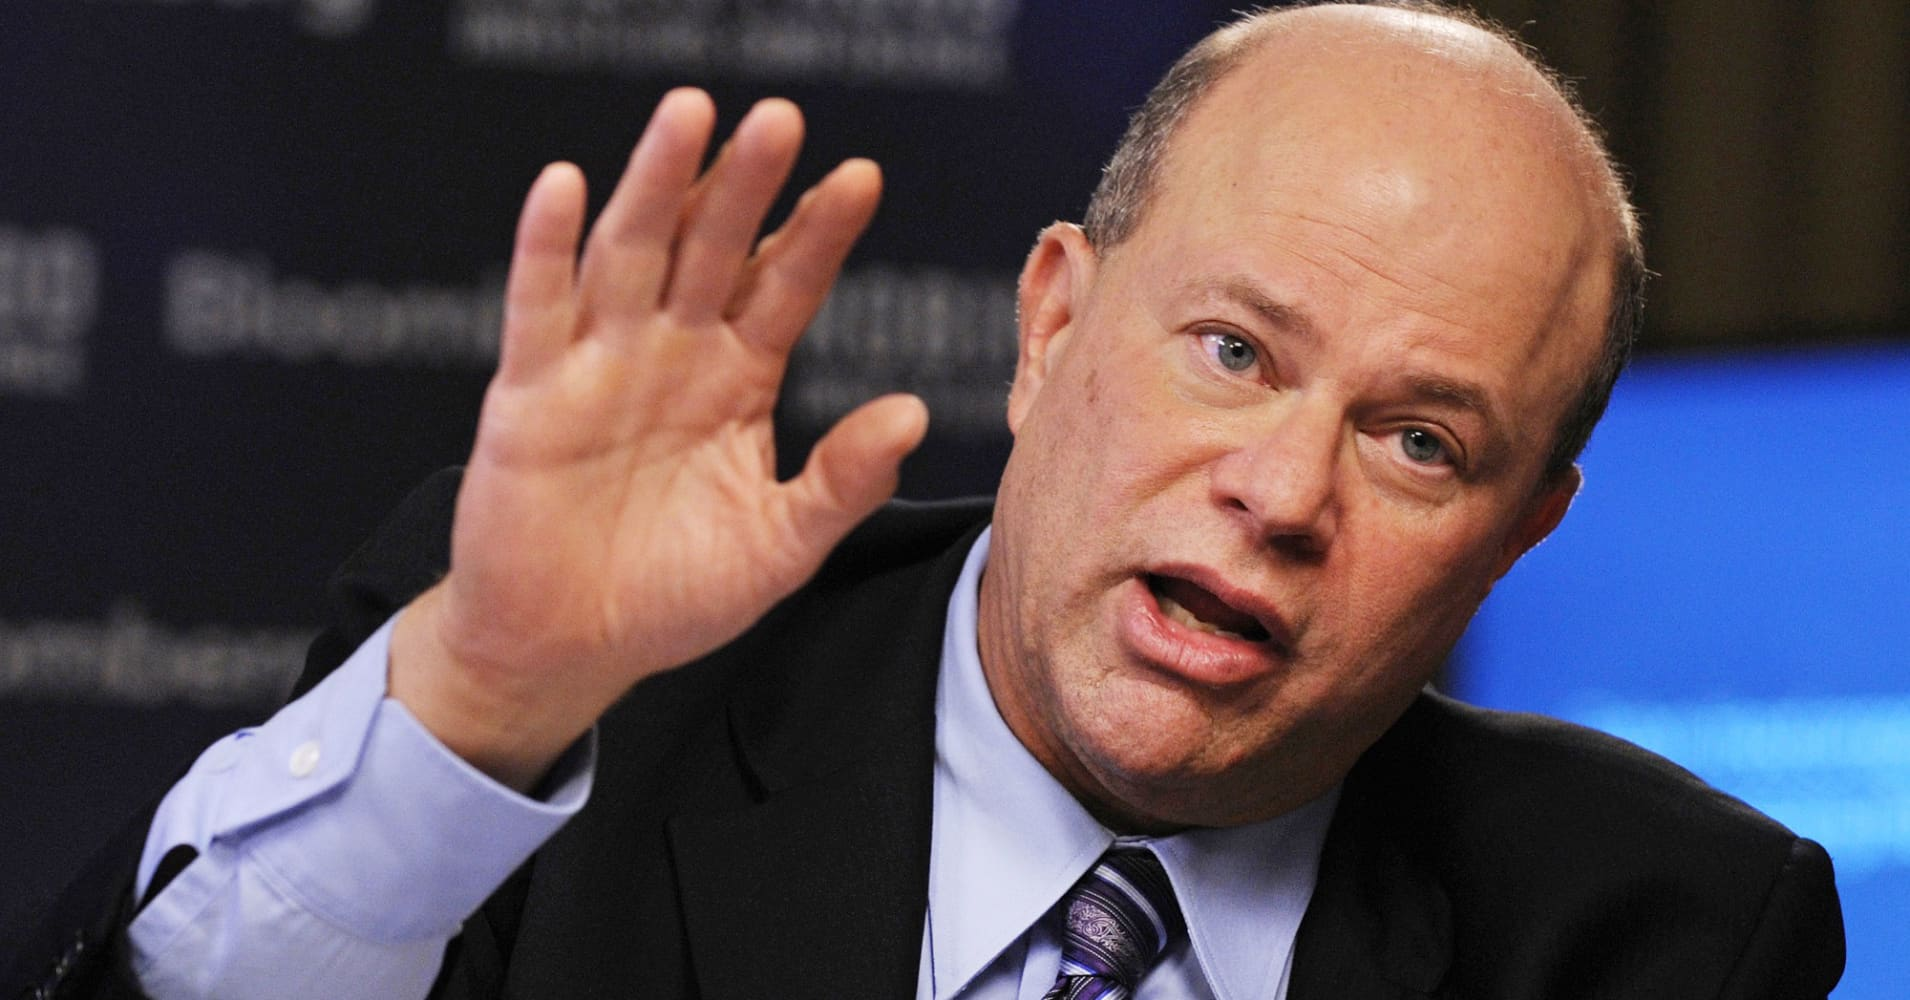 cnbc.com - Thomas Franck - David Tepper is reportedly converting hedge fund into a family office, returning outside capital